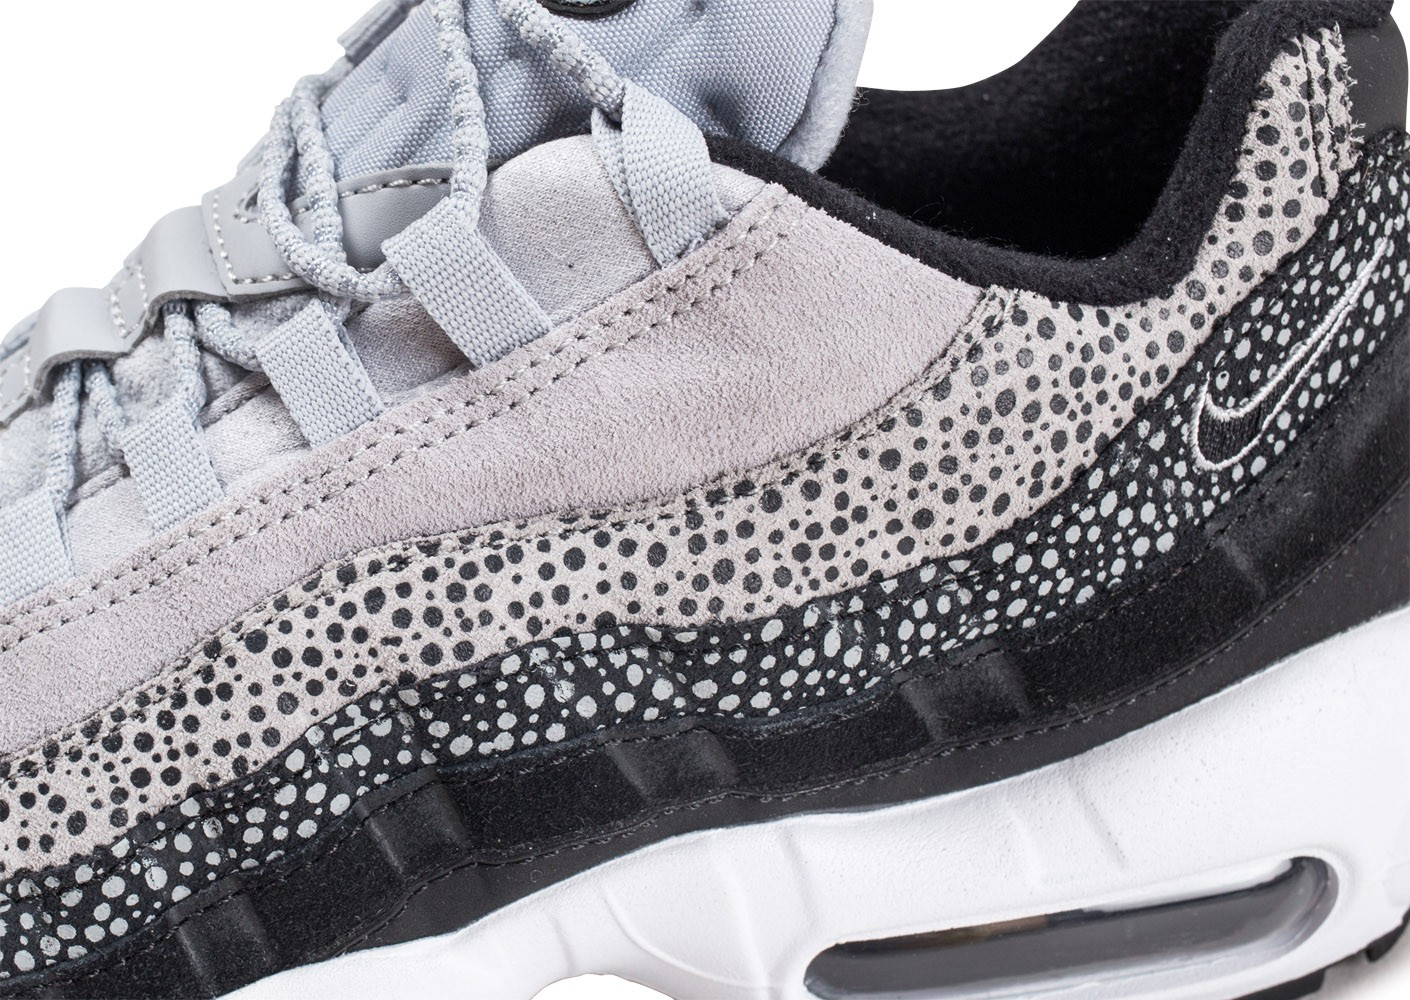 Nike Air Max 95 Premium Contrast grise femme - Chaussures ...